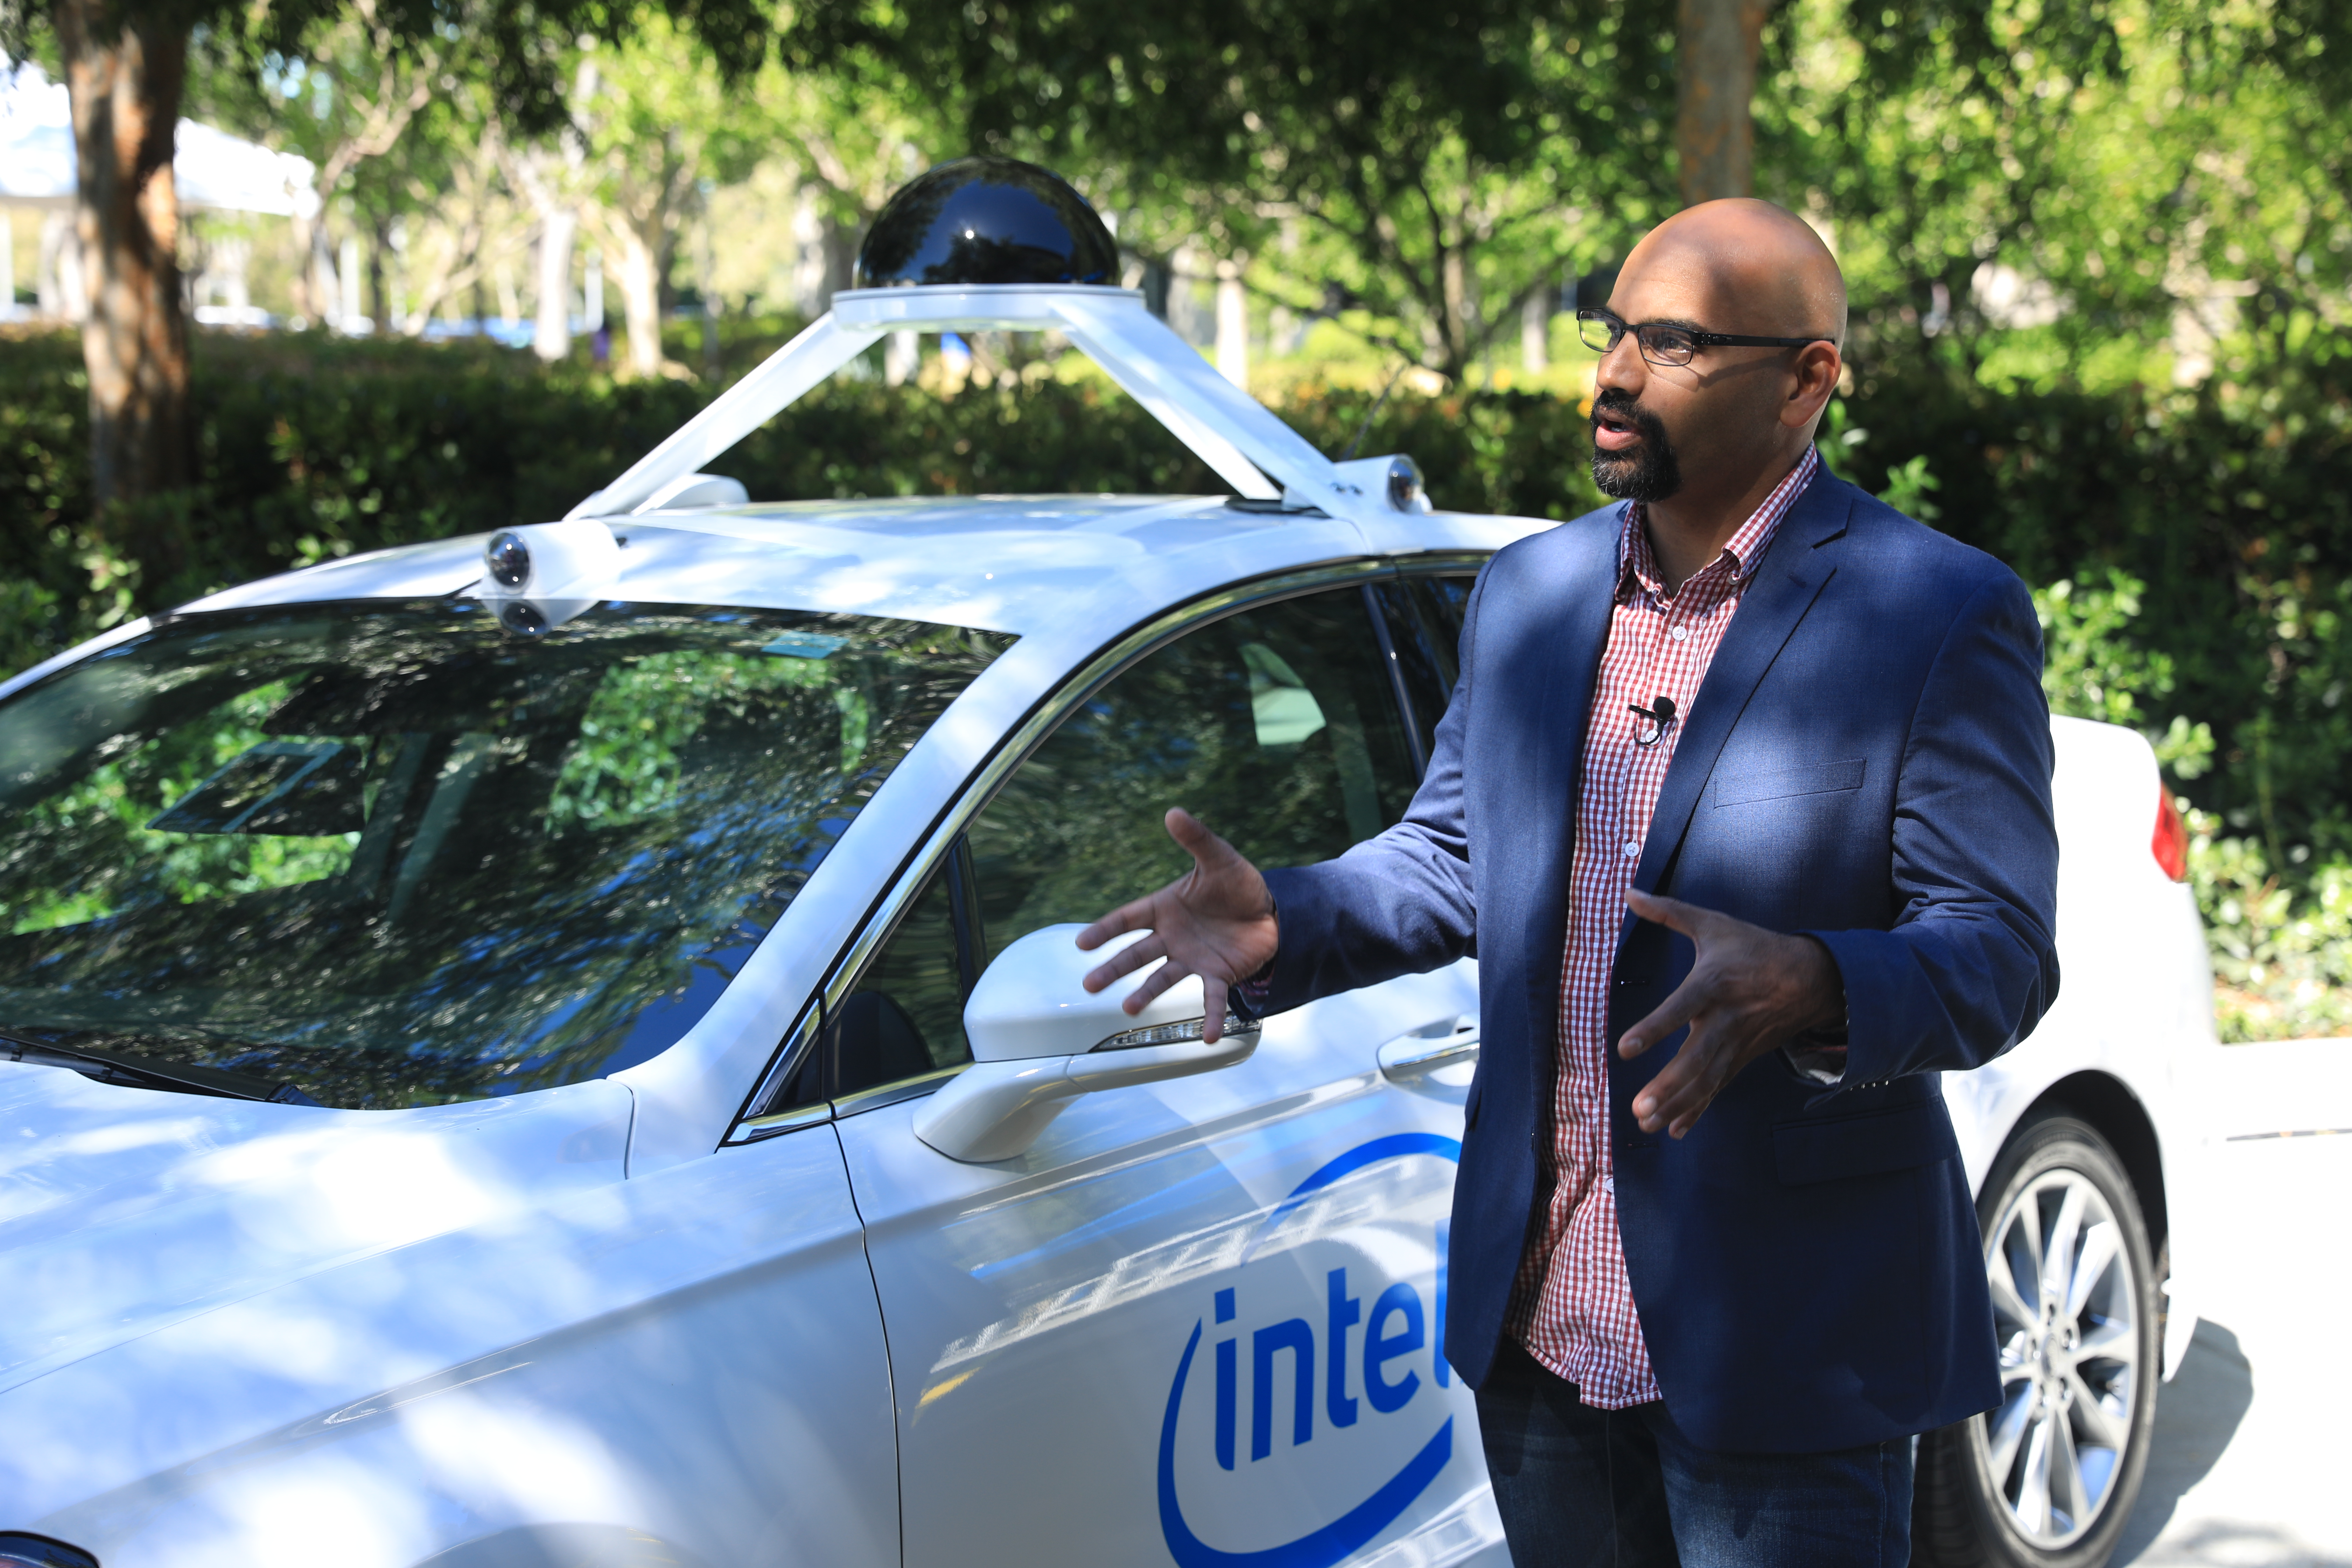 Intel to build a fleet of over 100 self-driving test cars starting later this year